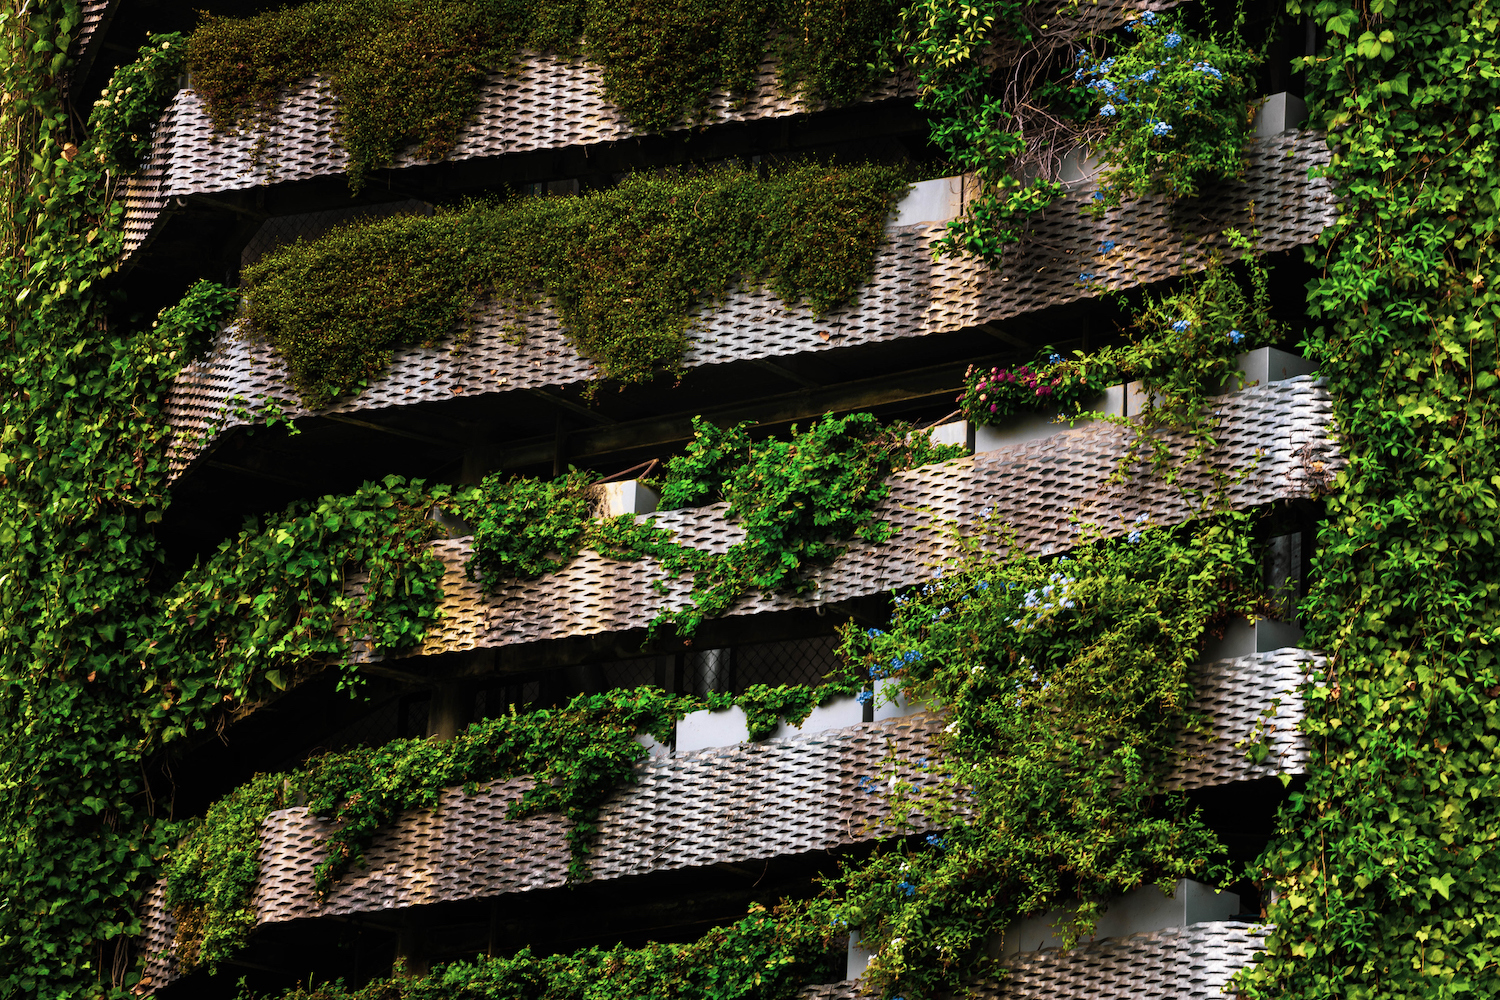 Green building covered with vertical garden in the city.